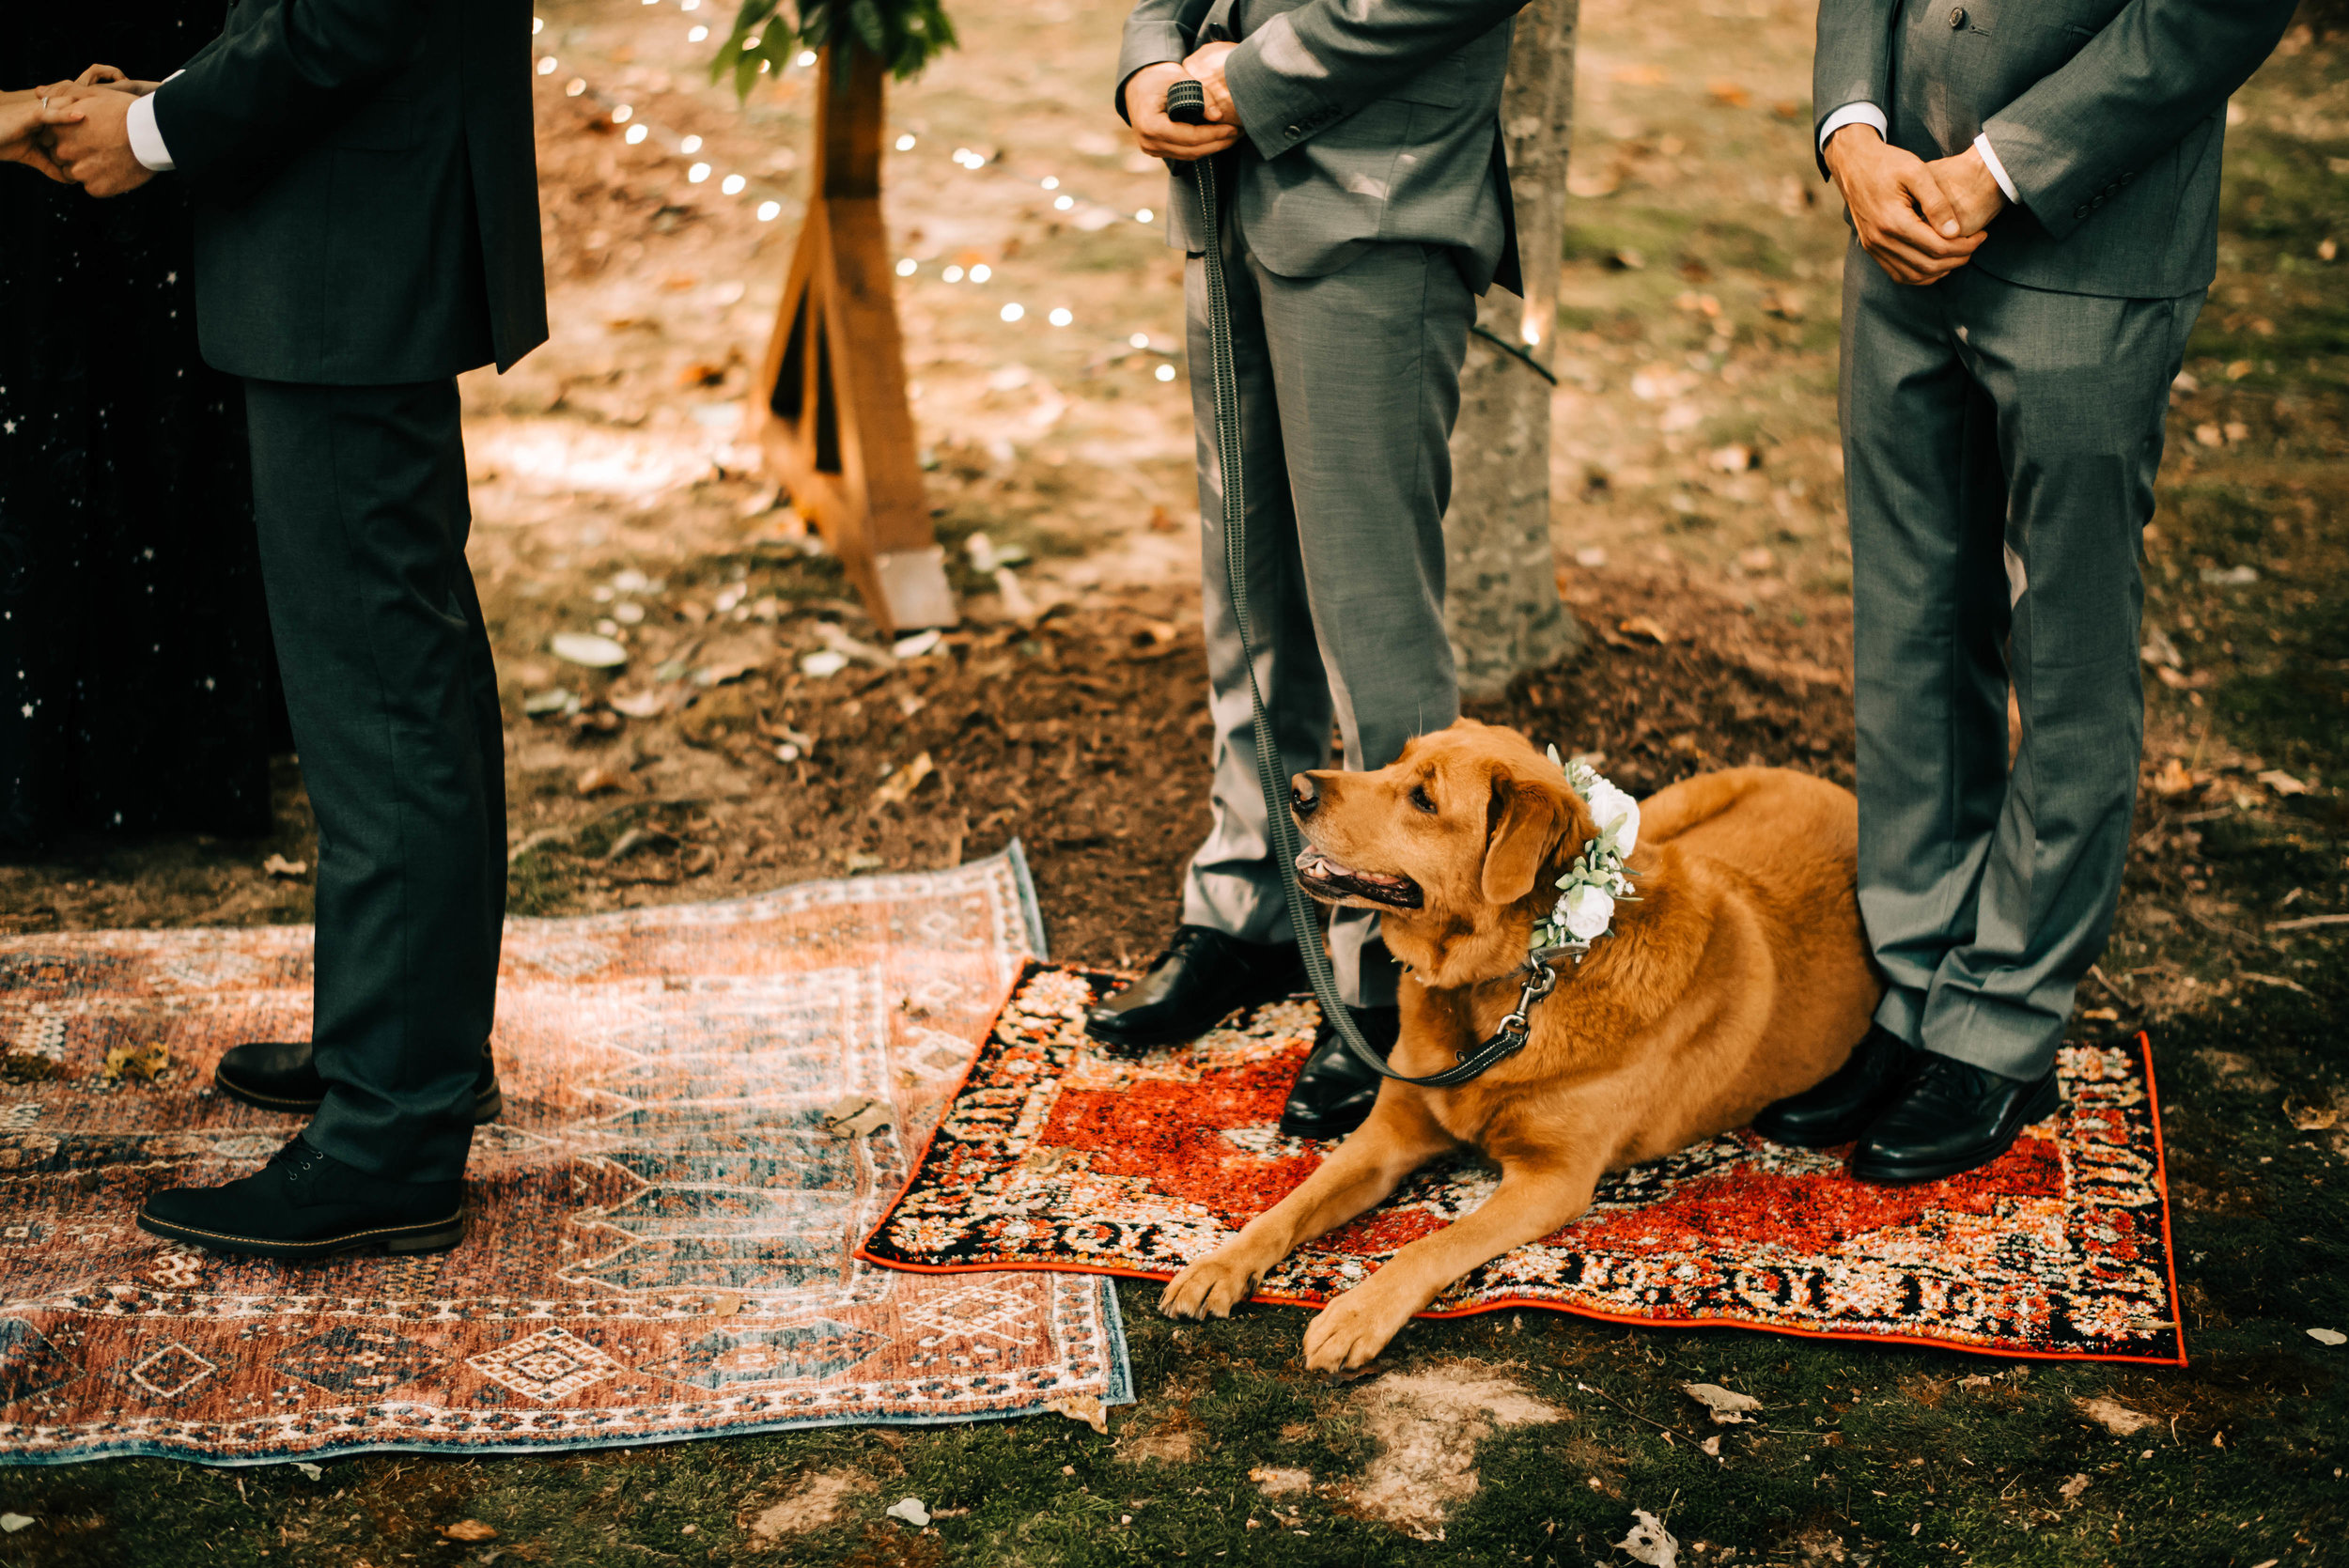 atlanta backyard wedding bay area oakland san francisco engagement wedding nontraditional fun creative eclectic photographer magic-617.jpg